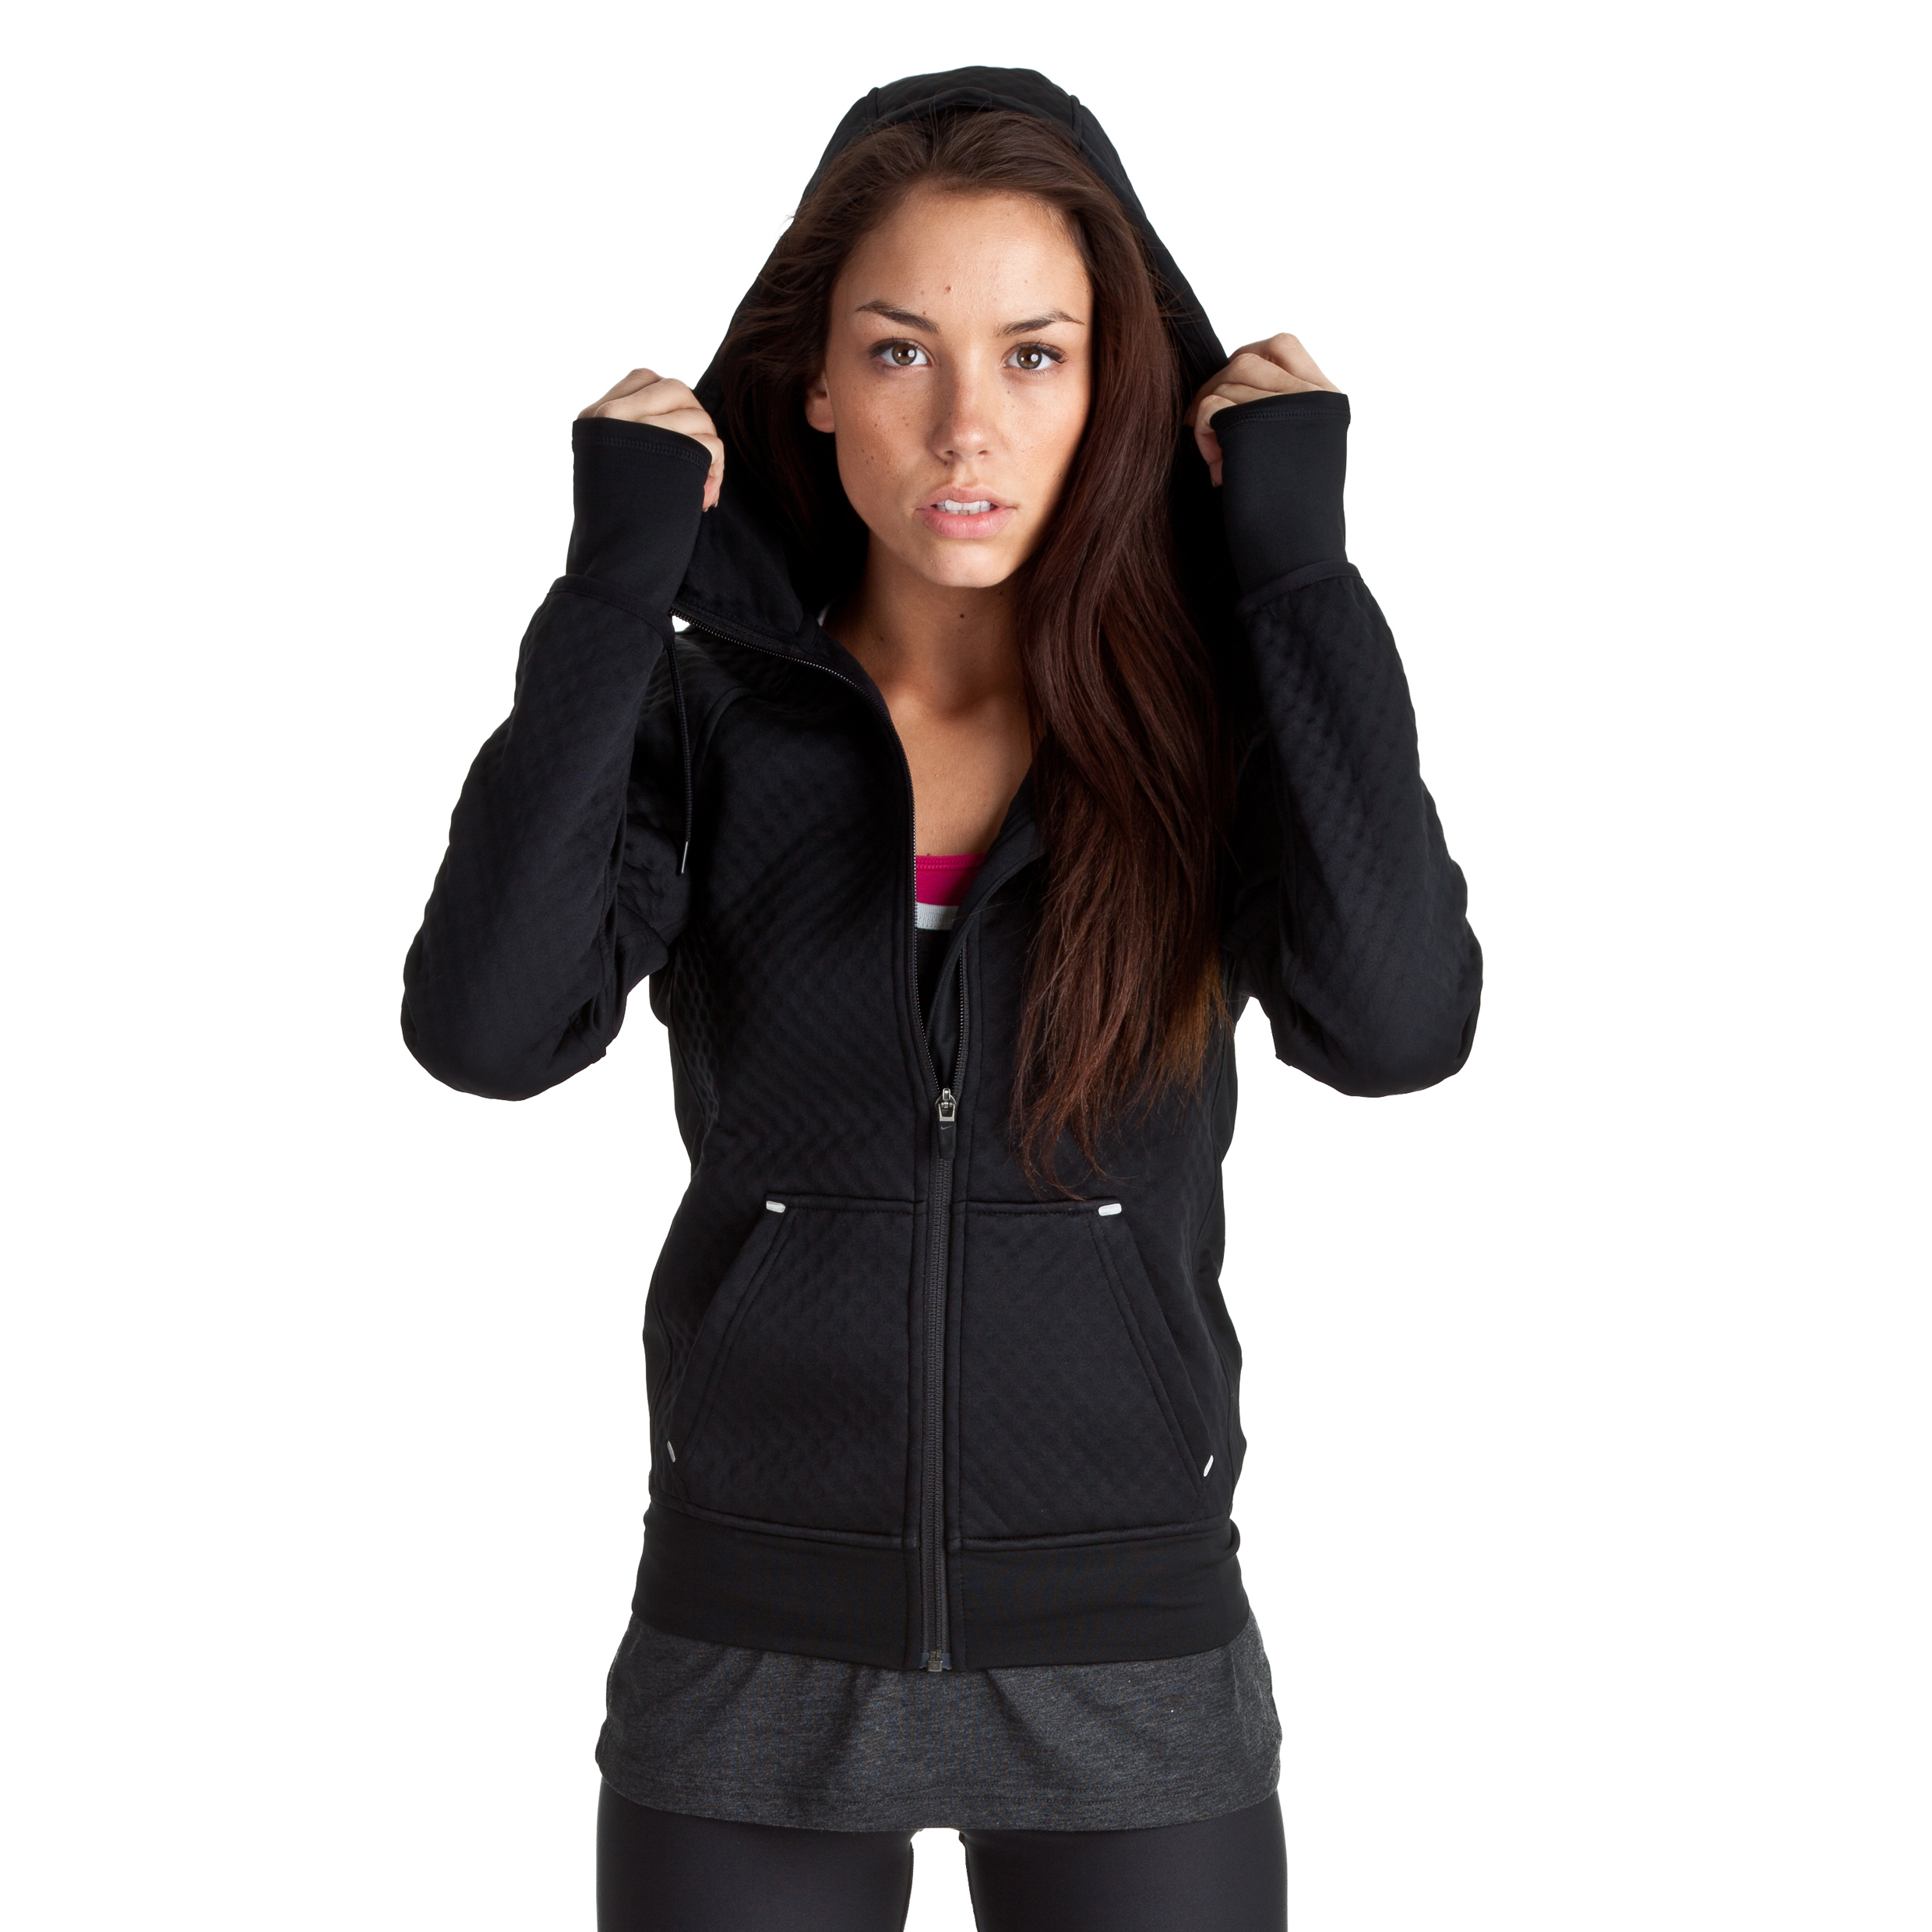 Nike All Time Sphere Hoody - Black/Black/White - Womens